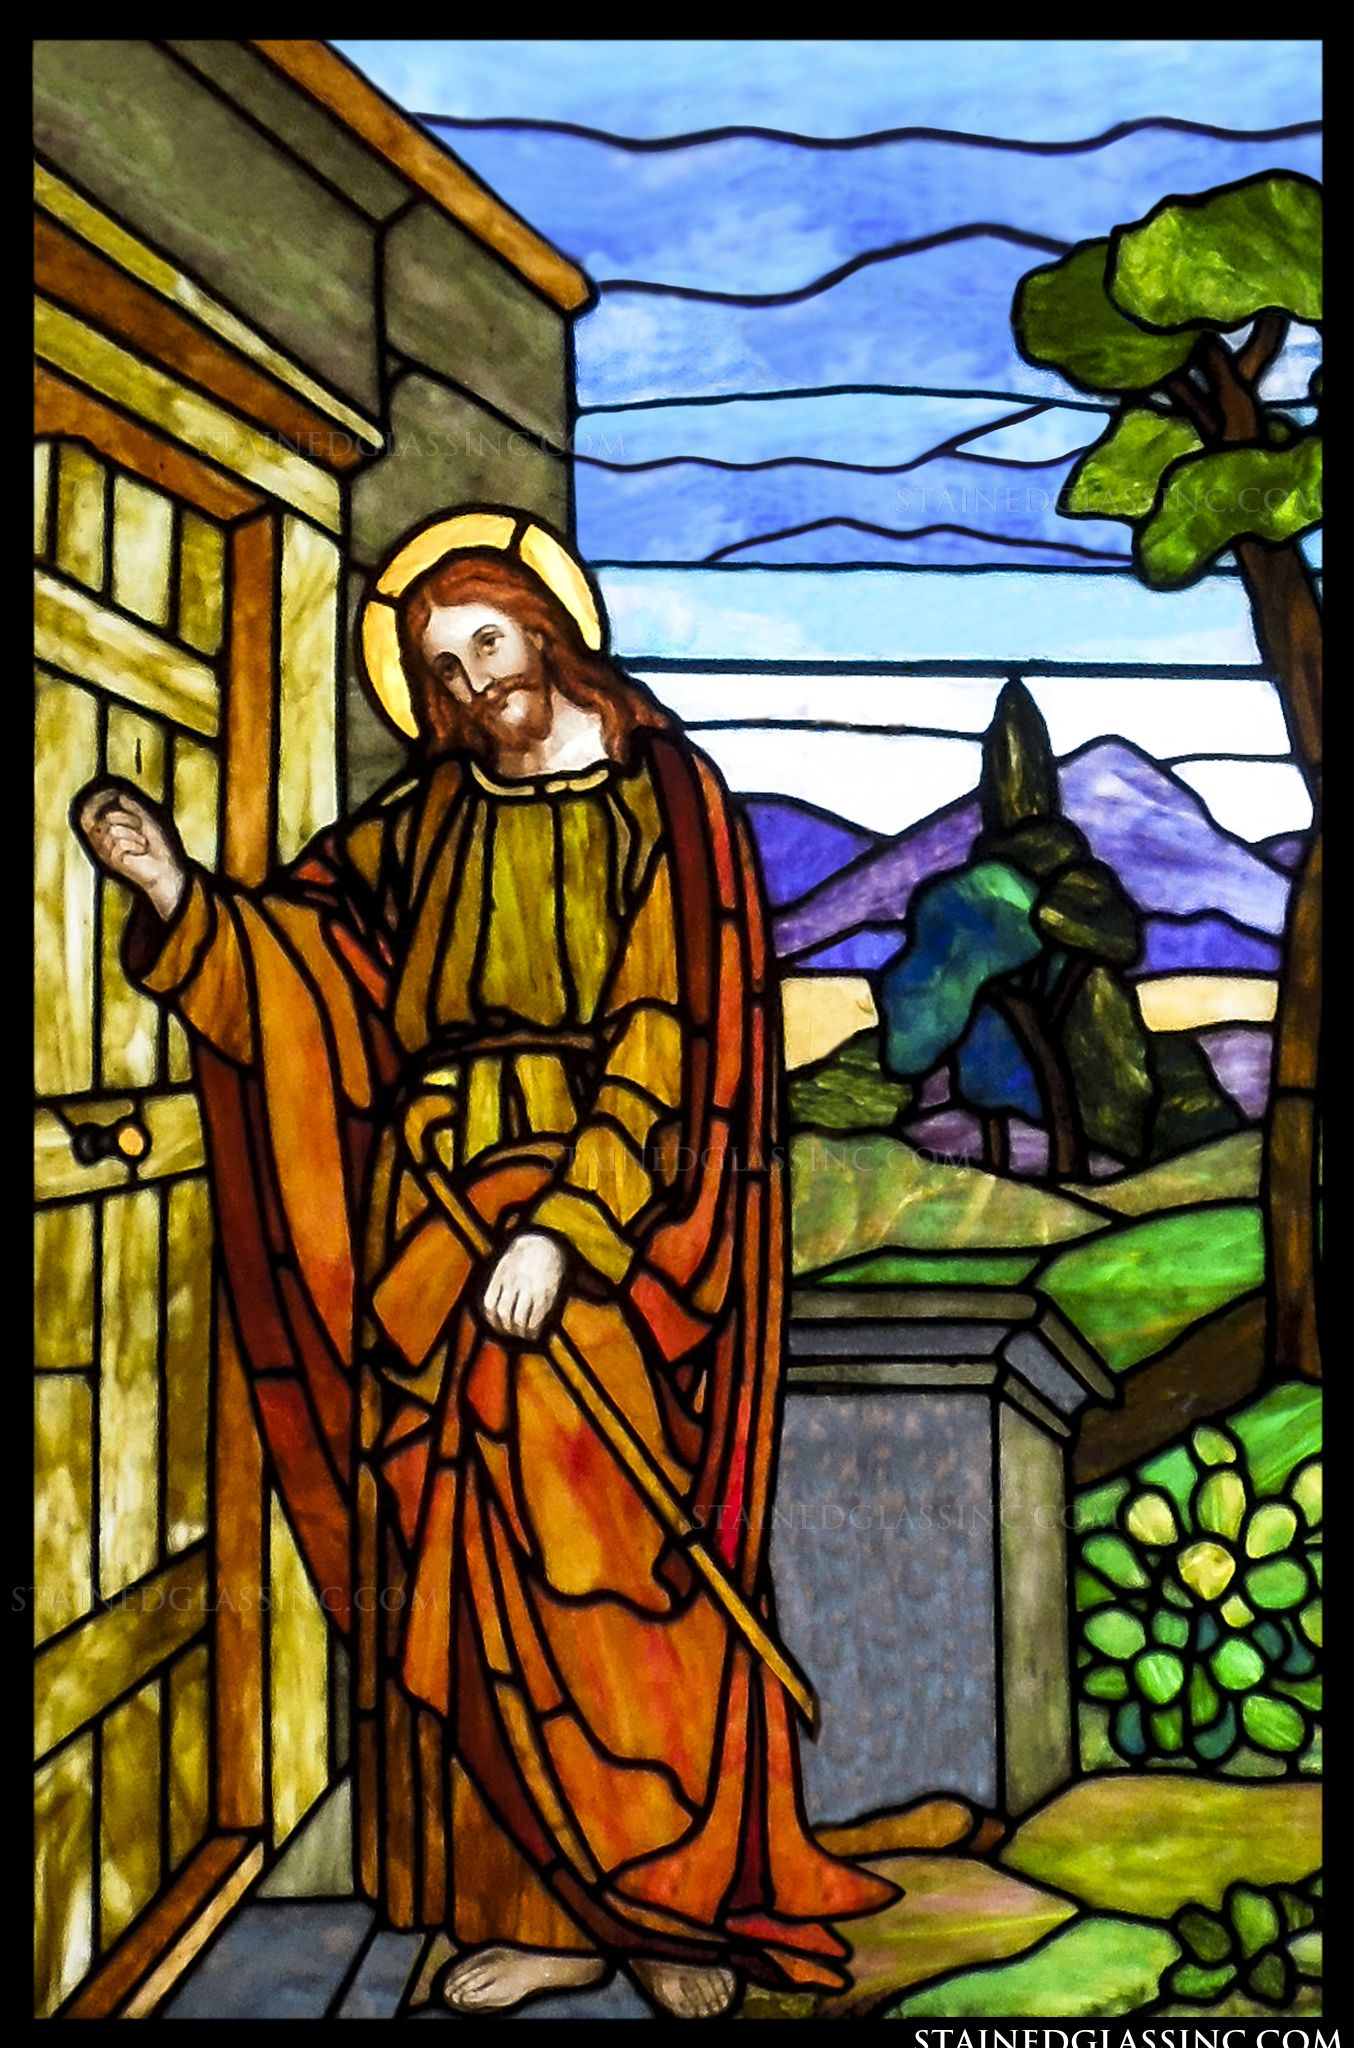 quotjesus is knockingquot religious stained glass window